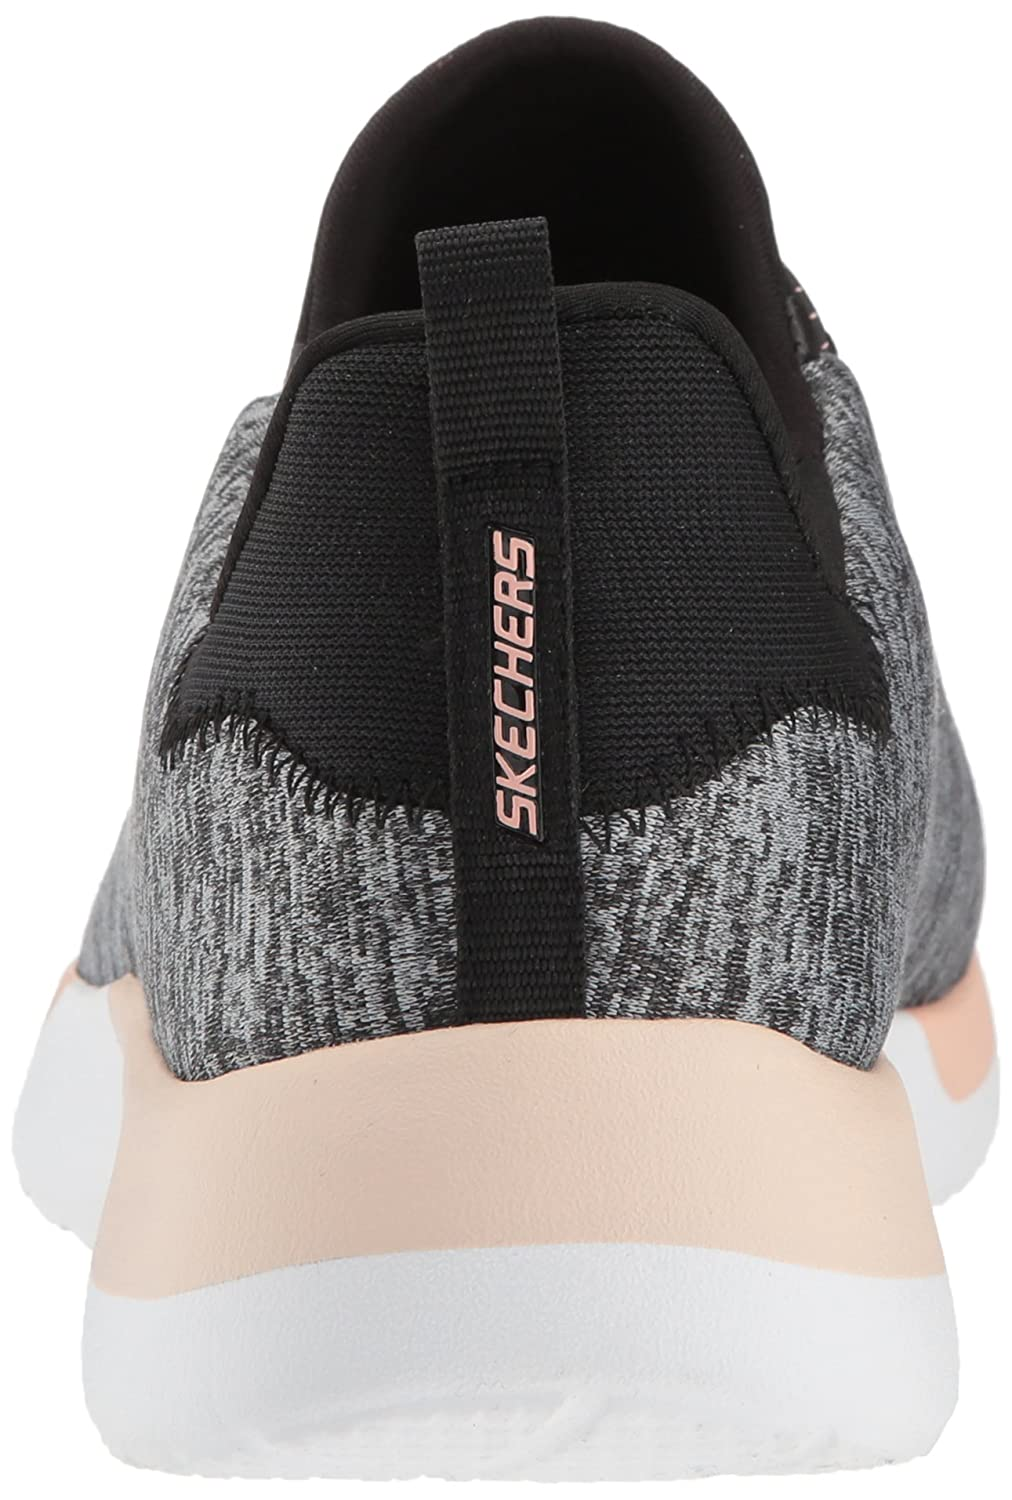 Skechers Women's Dynamight-Breakthrough Sneaker B076VY6963 8 B(M) US|Black Coral